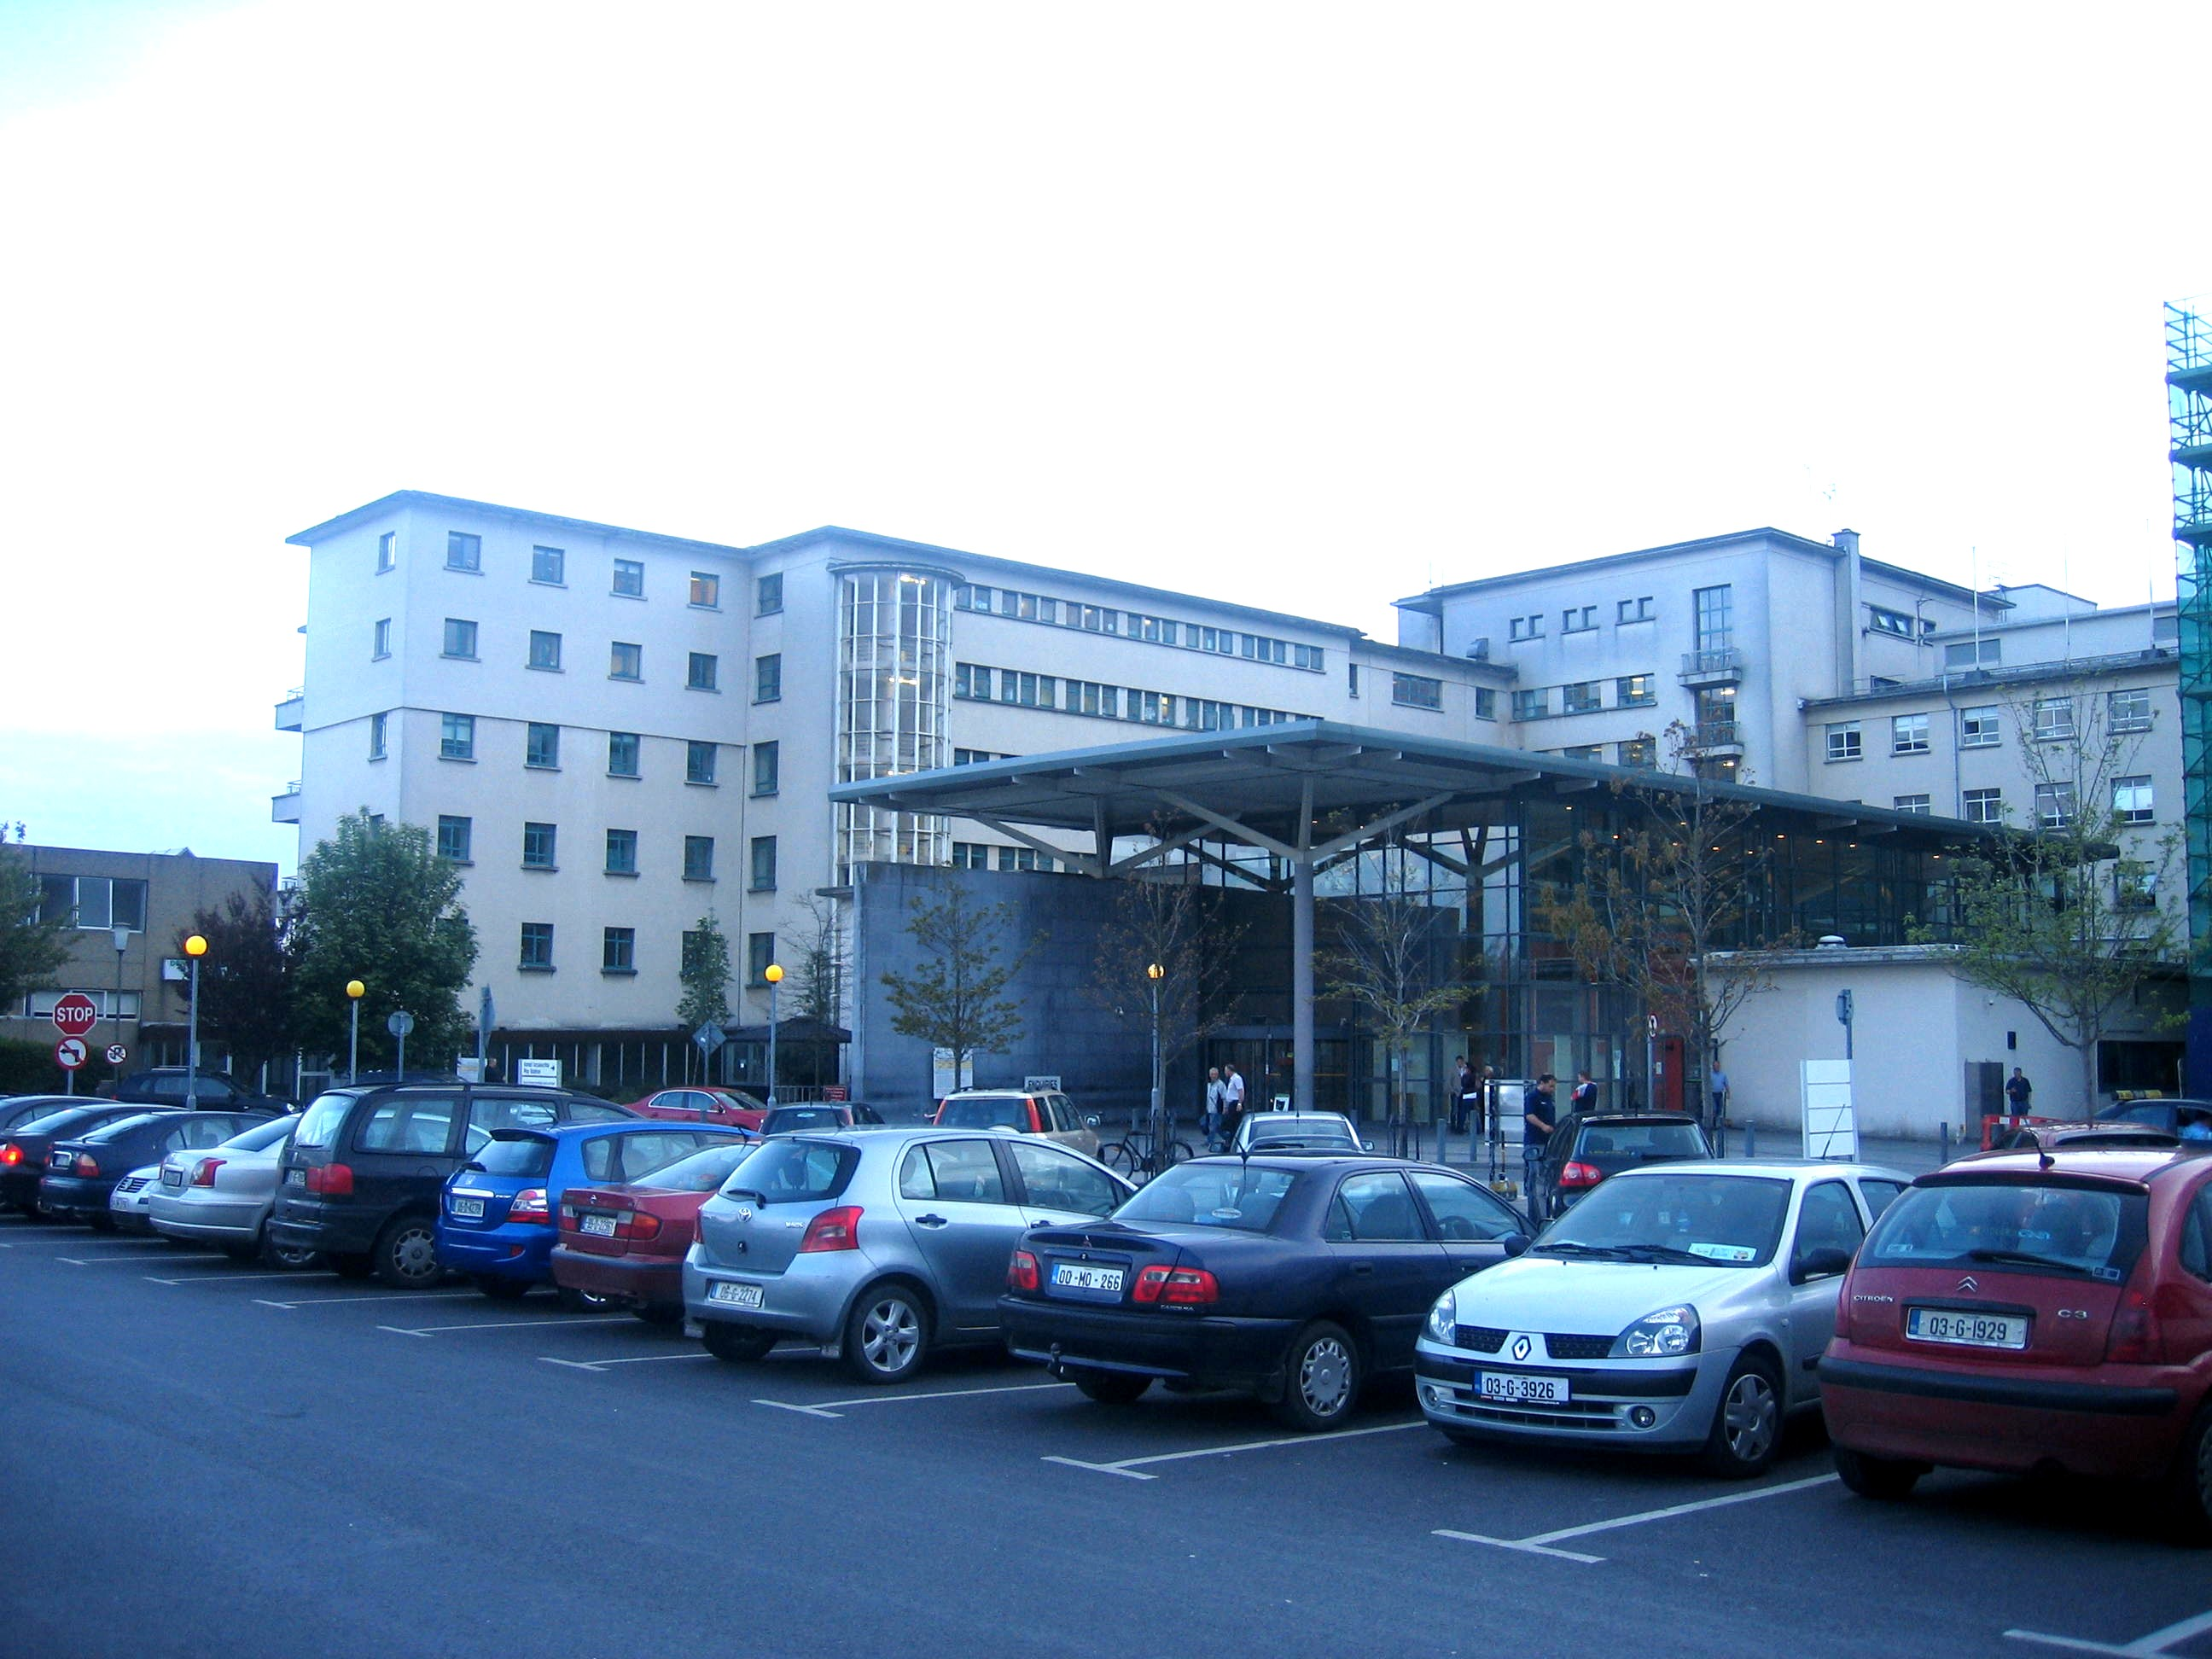 Inspection finds critical breach of regulations at UHG mental health unit